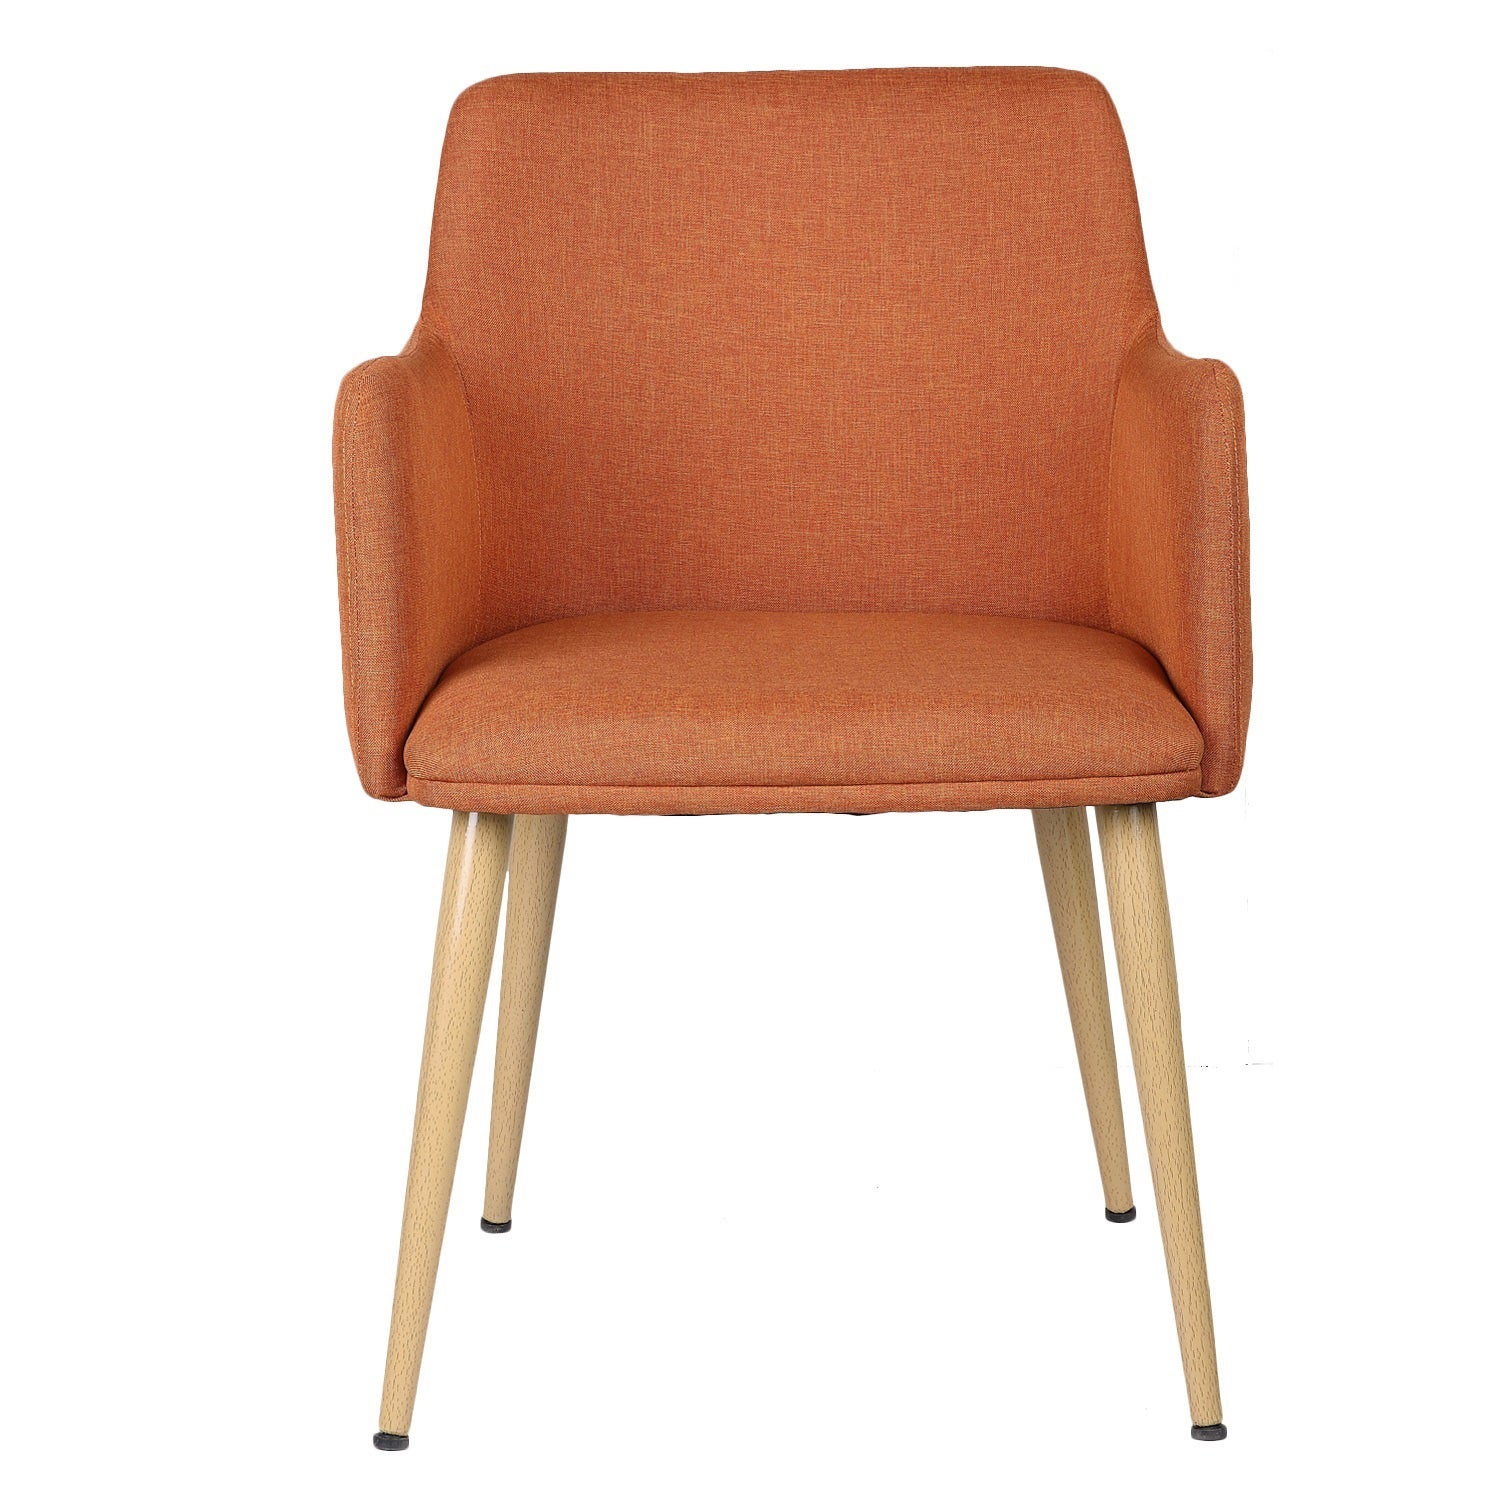 Adeco Linen Leisure Chair (Orange)